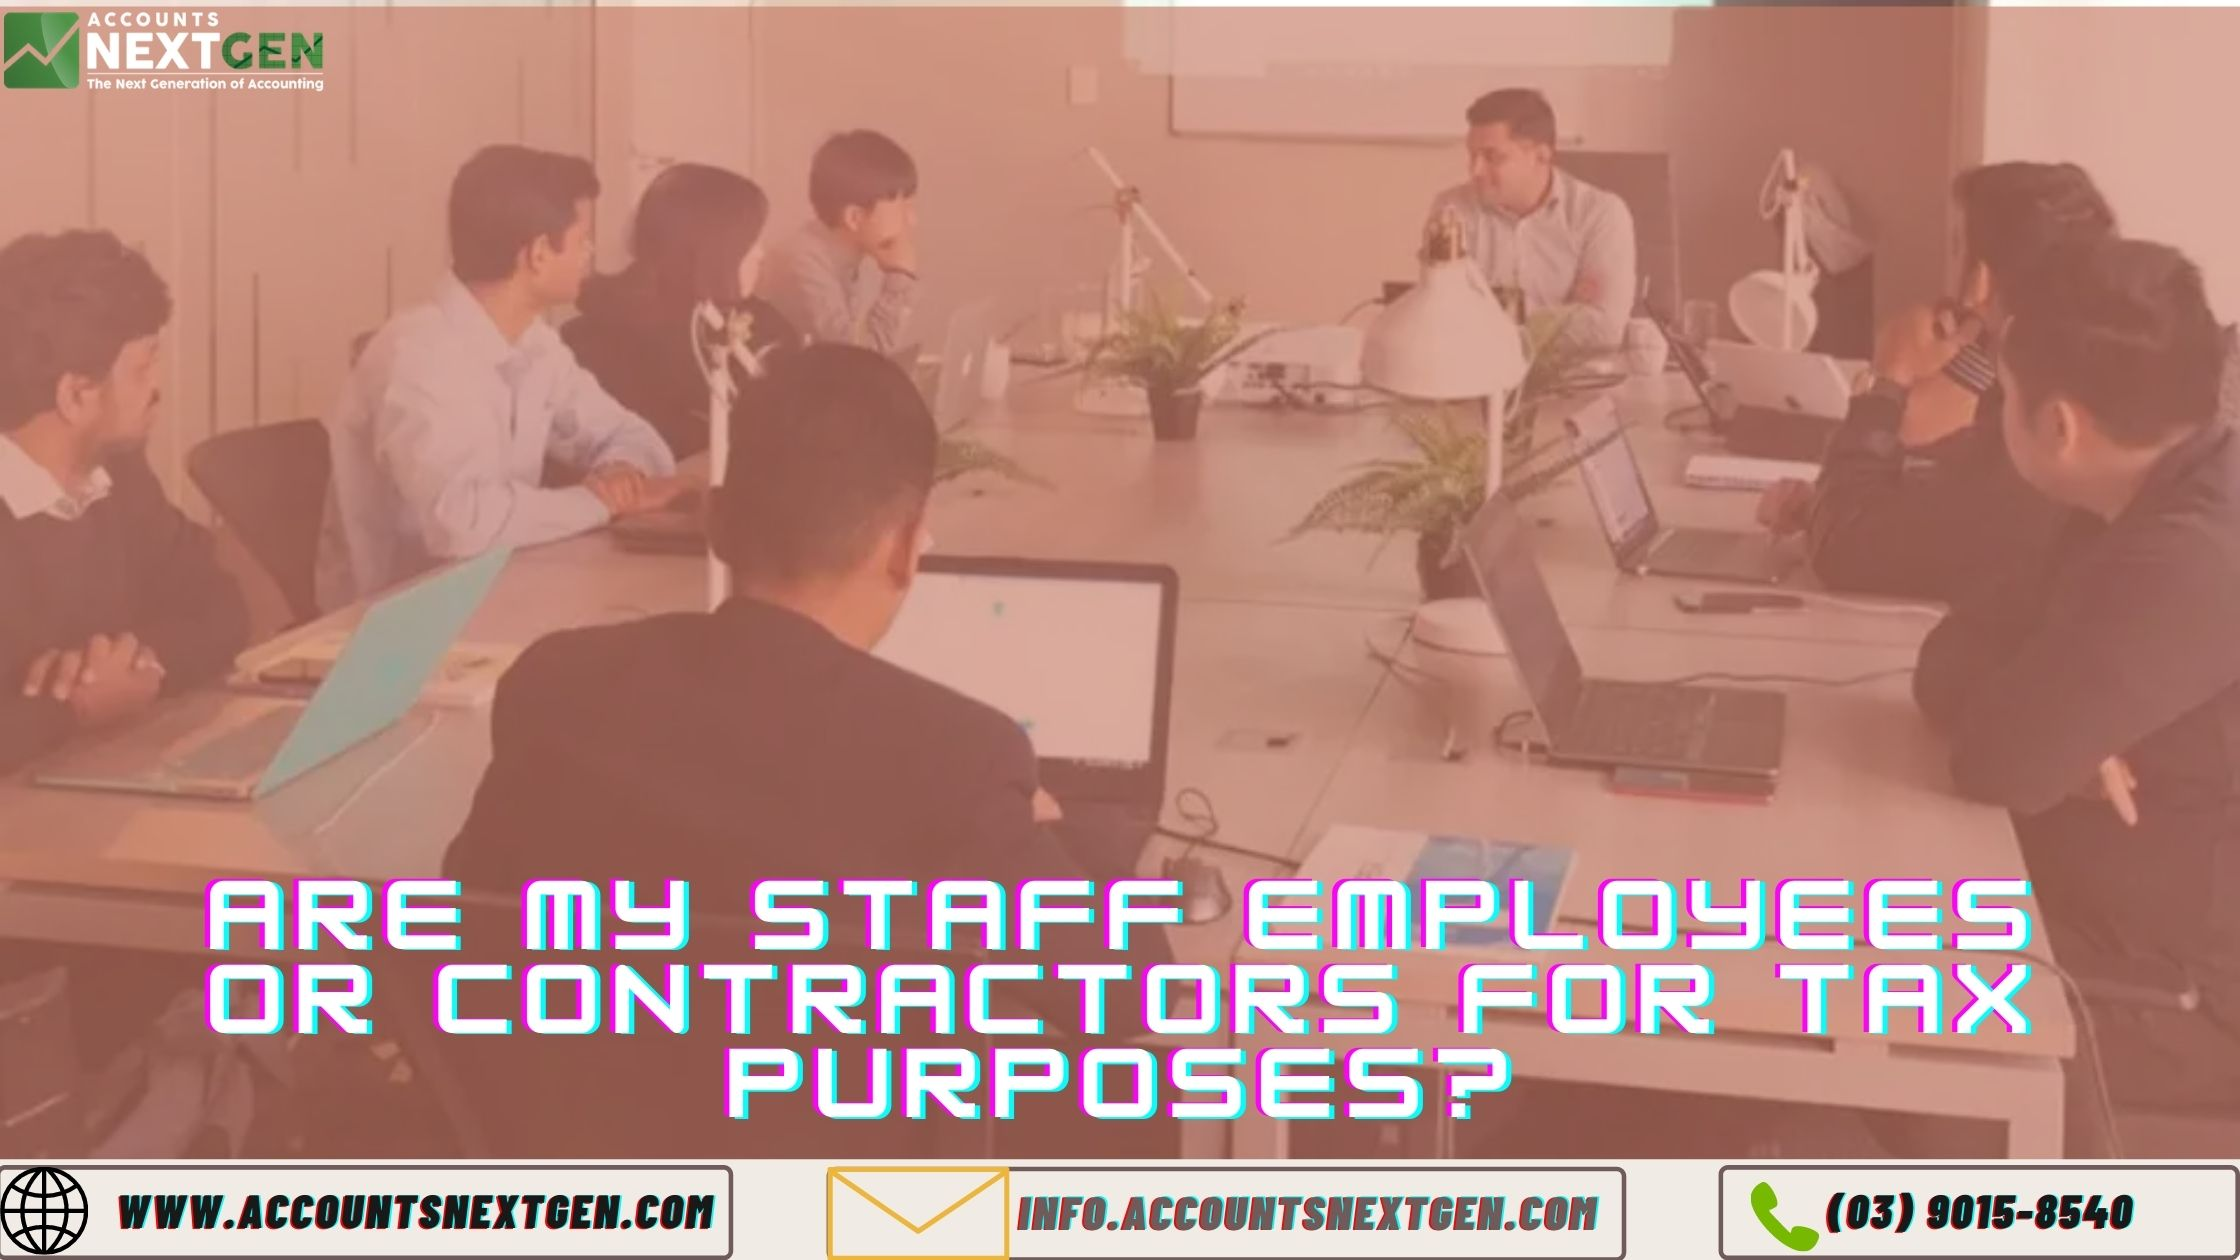 Are my staff employees or contractors for tax purposes?